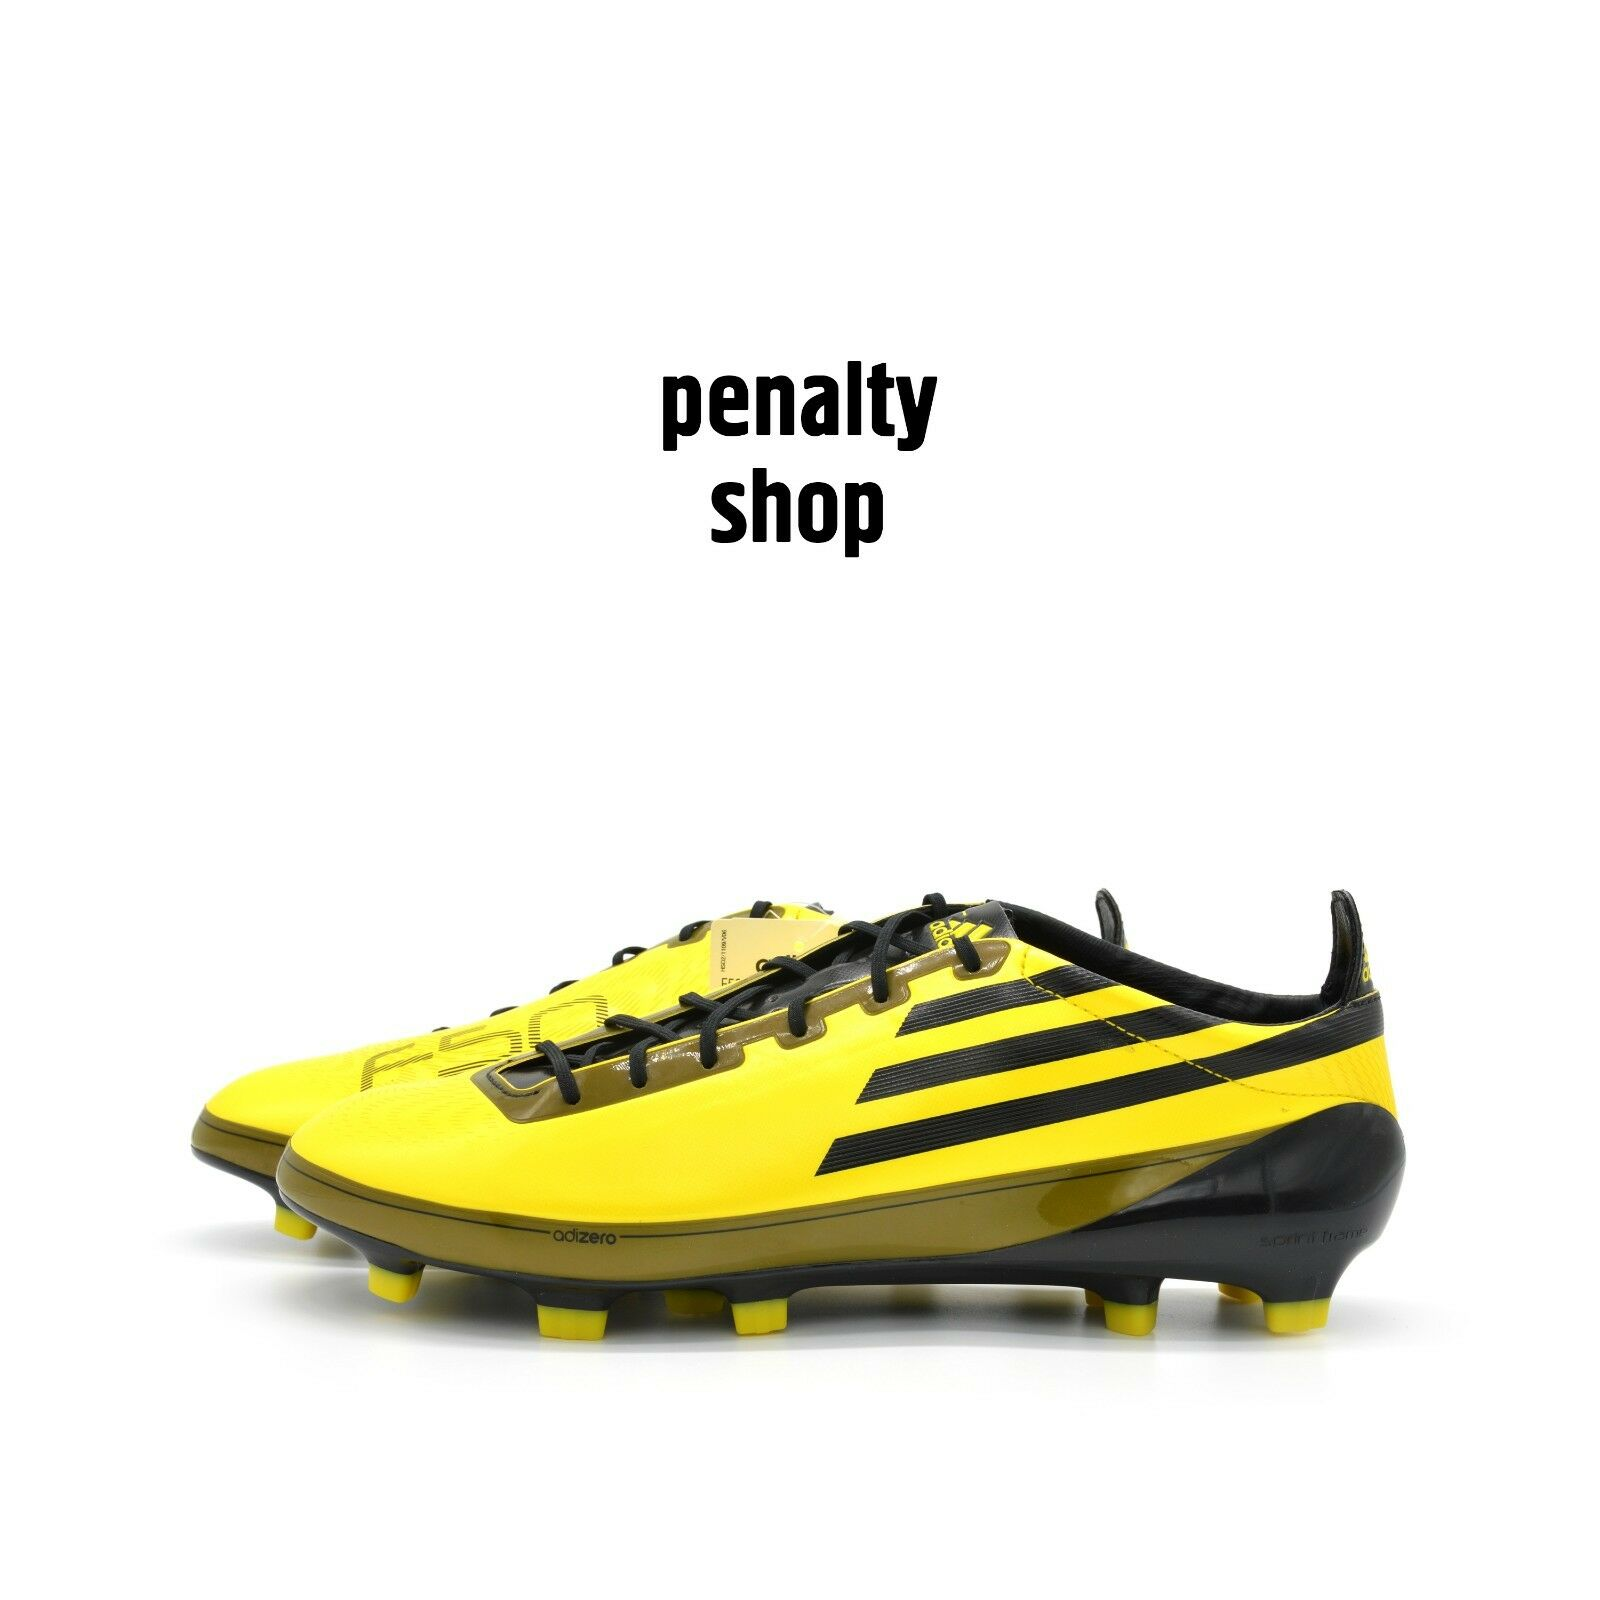 Adidas adizero F50 TRX FG Synthetic G16995 RARE Limited Edition